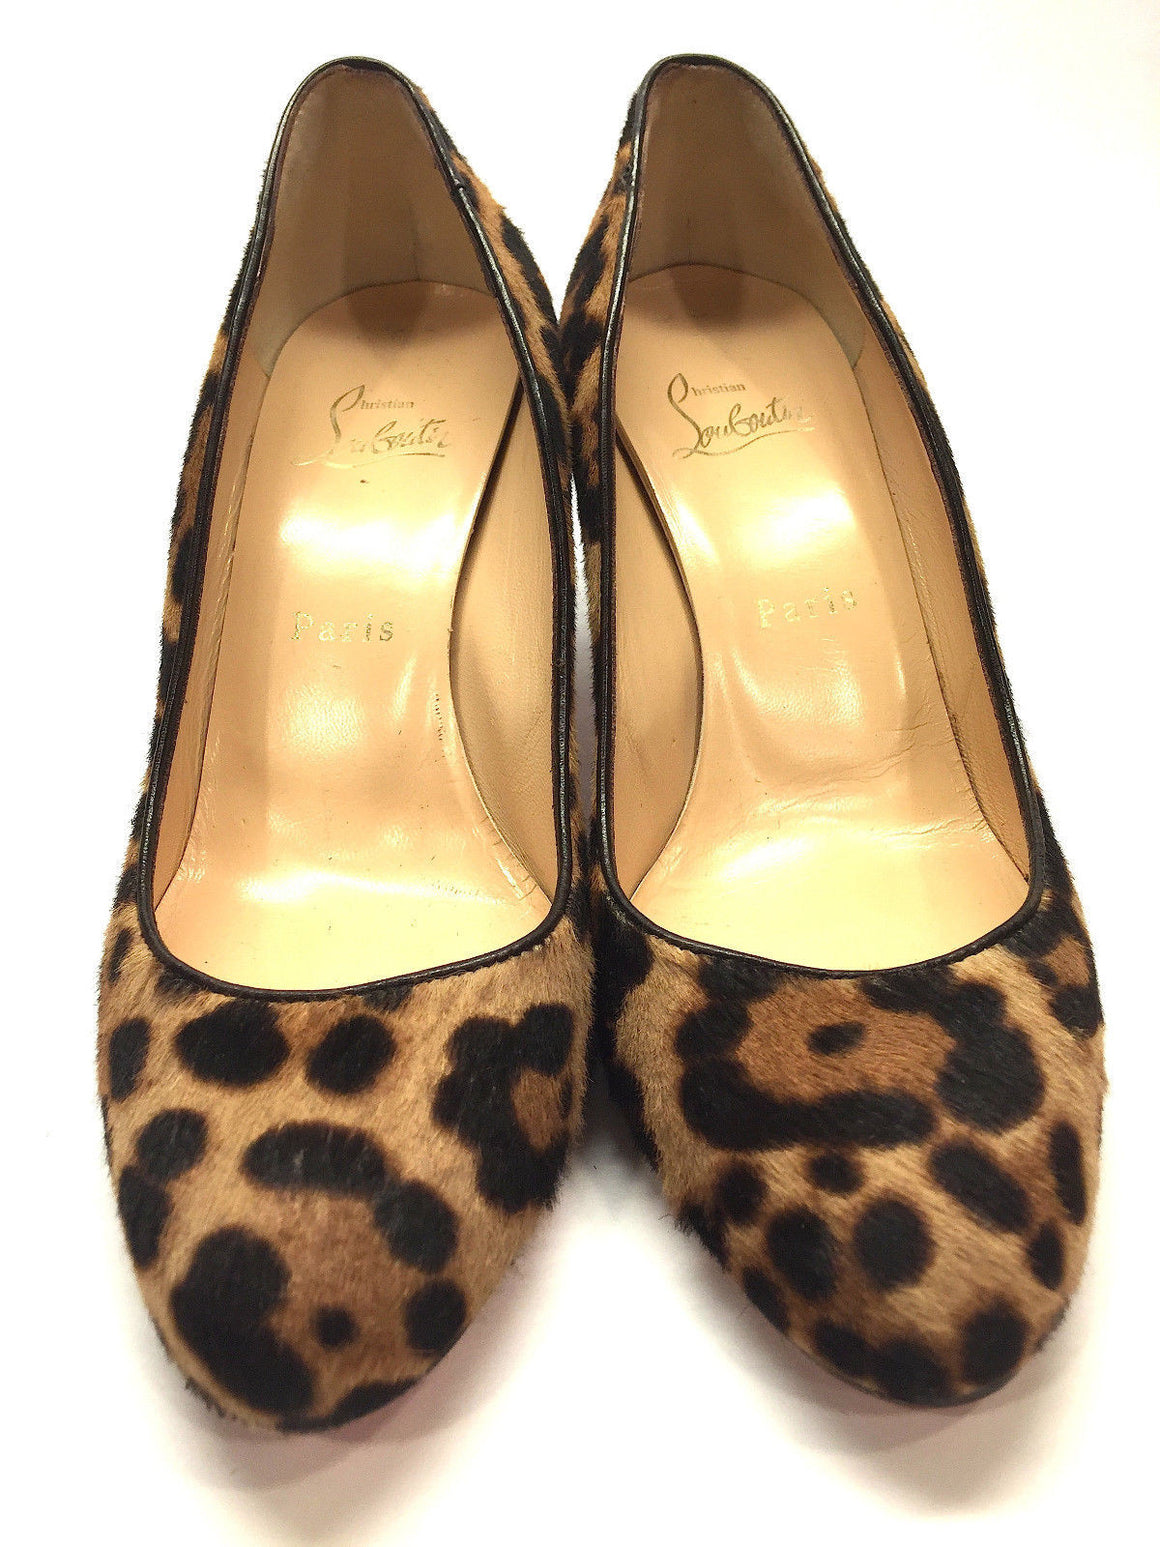 bisbiz.com CHRISTIAN LOUBOUTIN  Tan/Brown Animal-Print Calf Hair Rounded-Toe  Heel Pumps Shoes  Size: 37 / 7 - Bis Luxury Resale